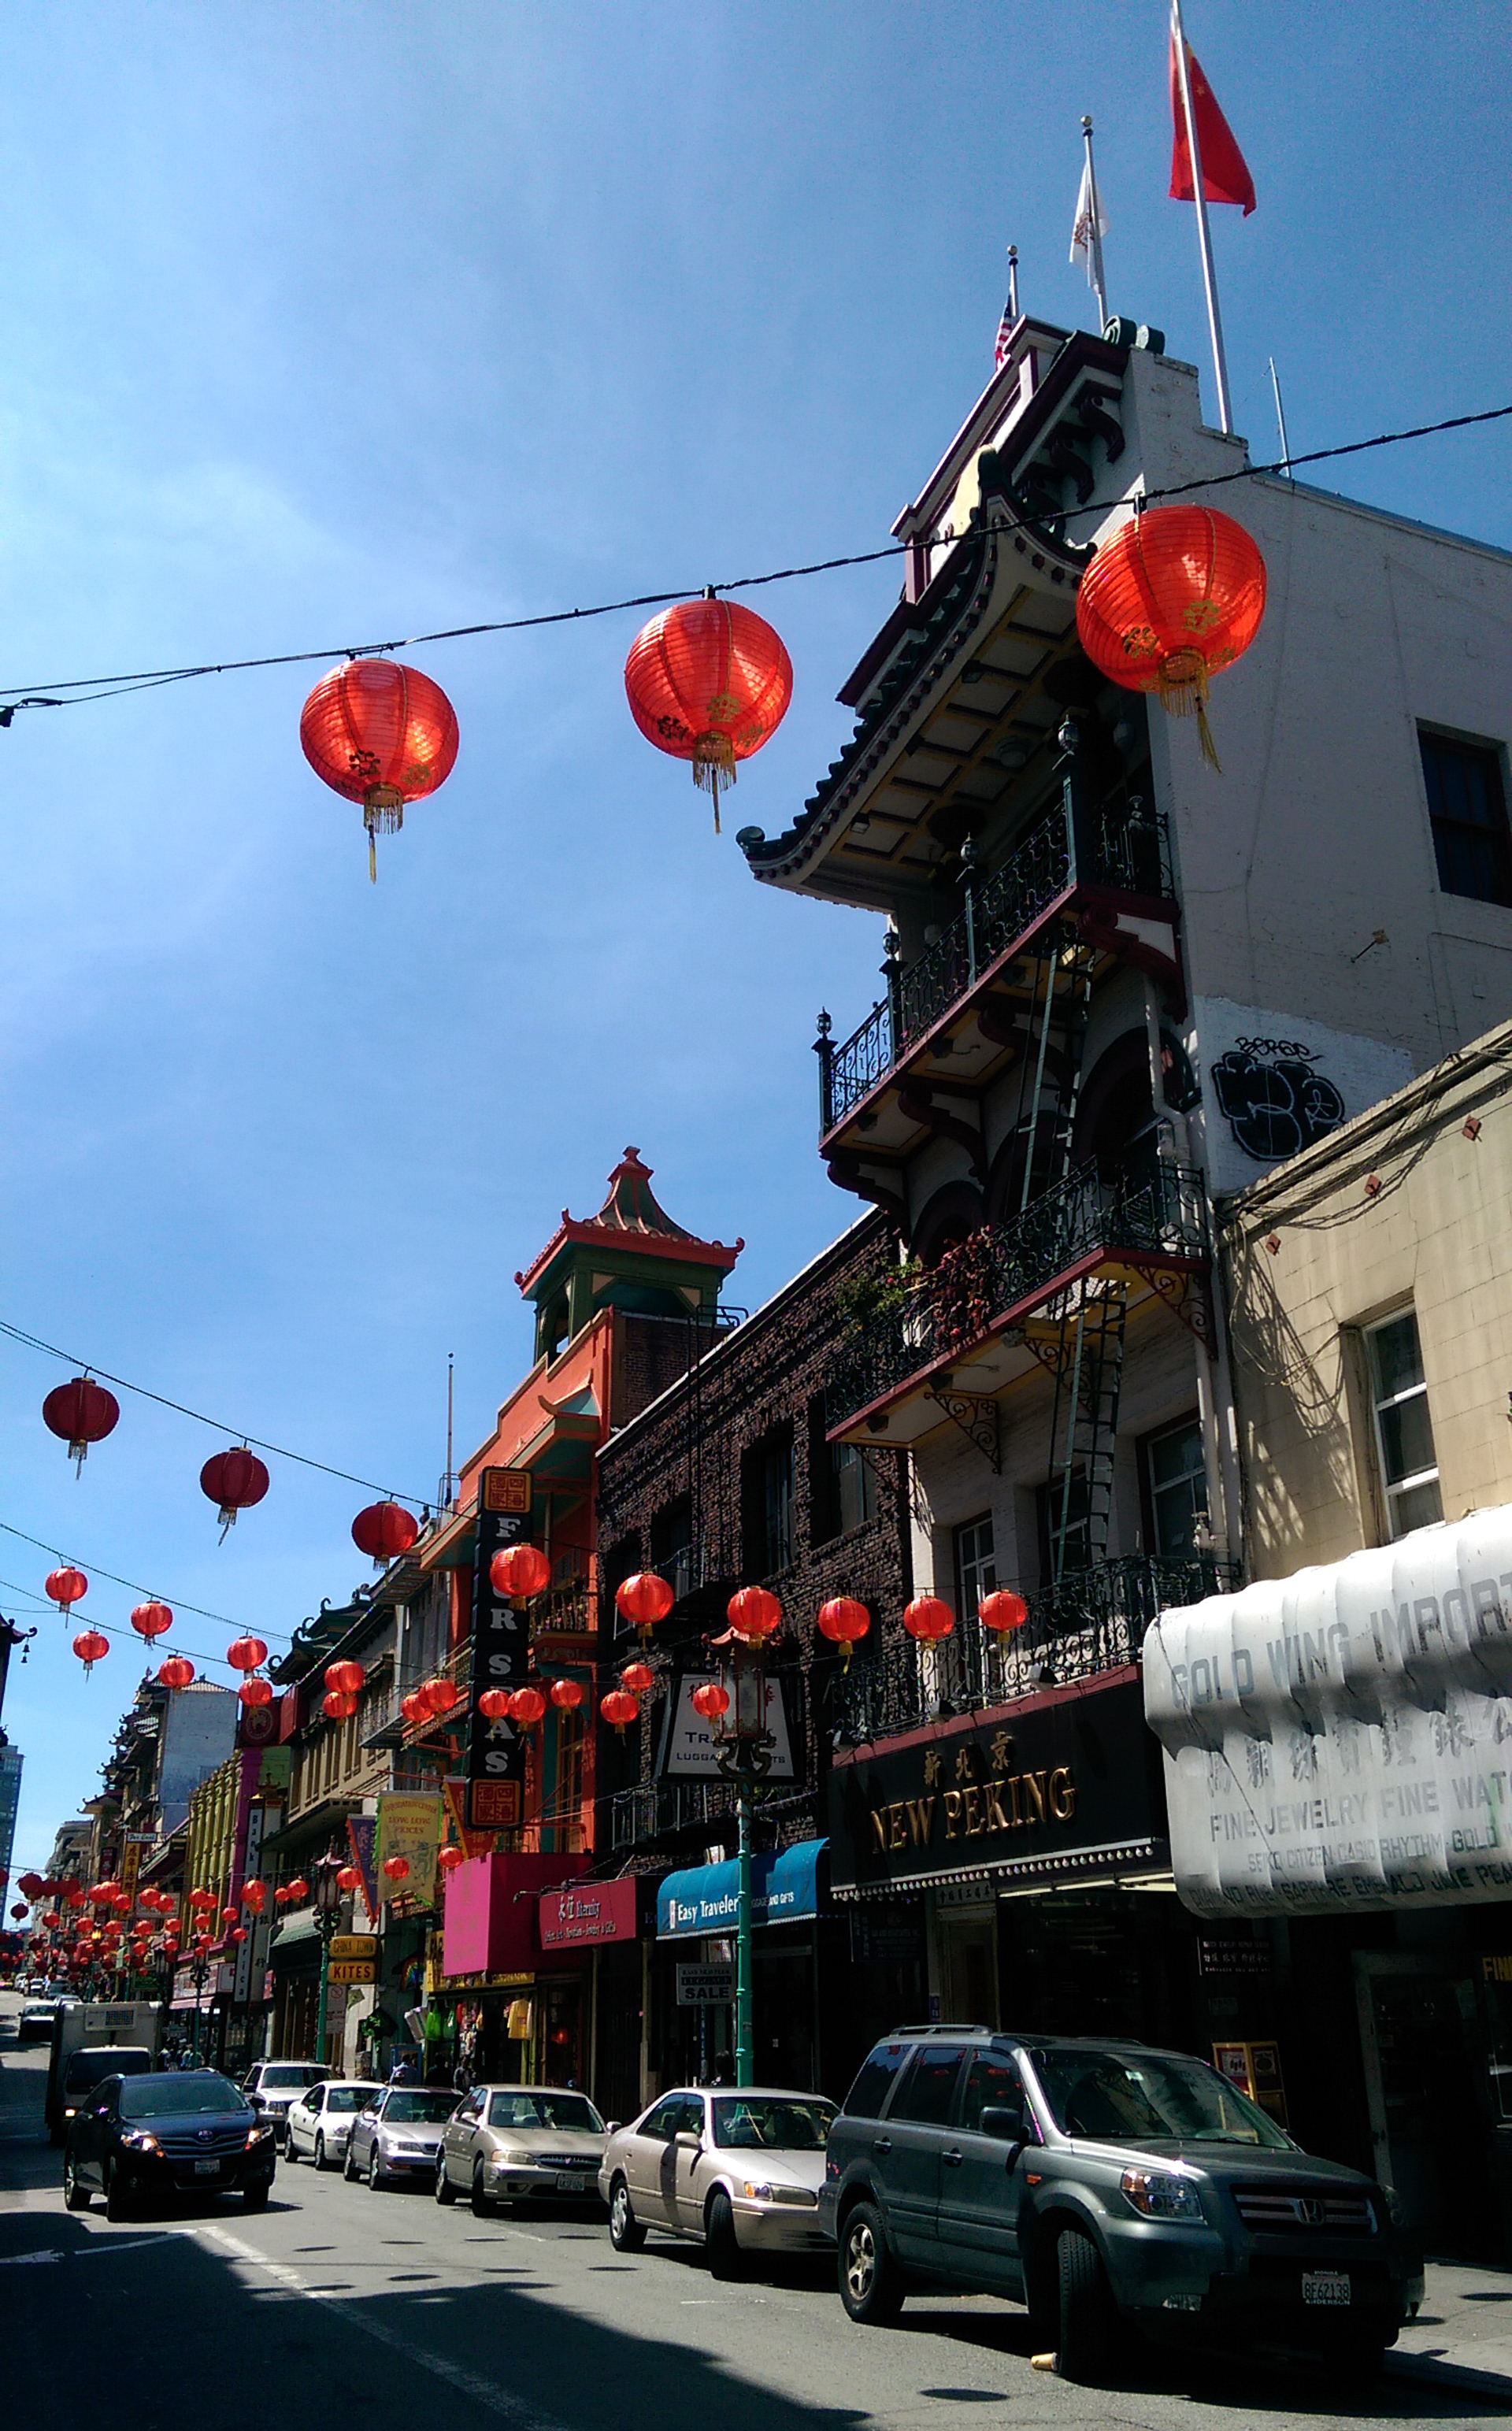 Sightseeing in San Francisco - Chinatown lanterns